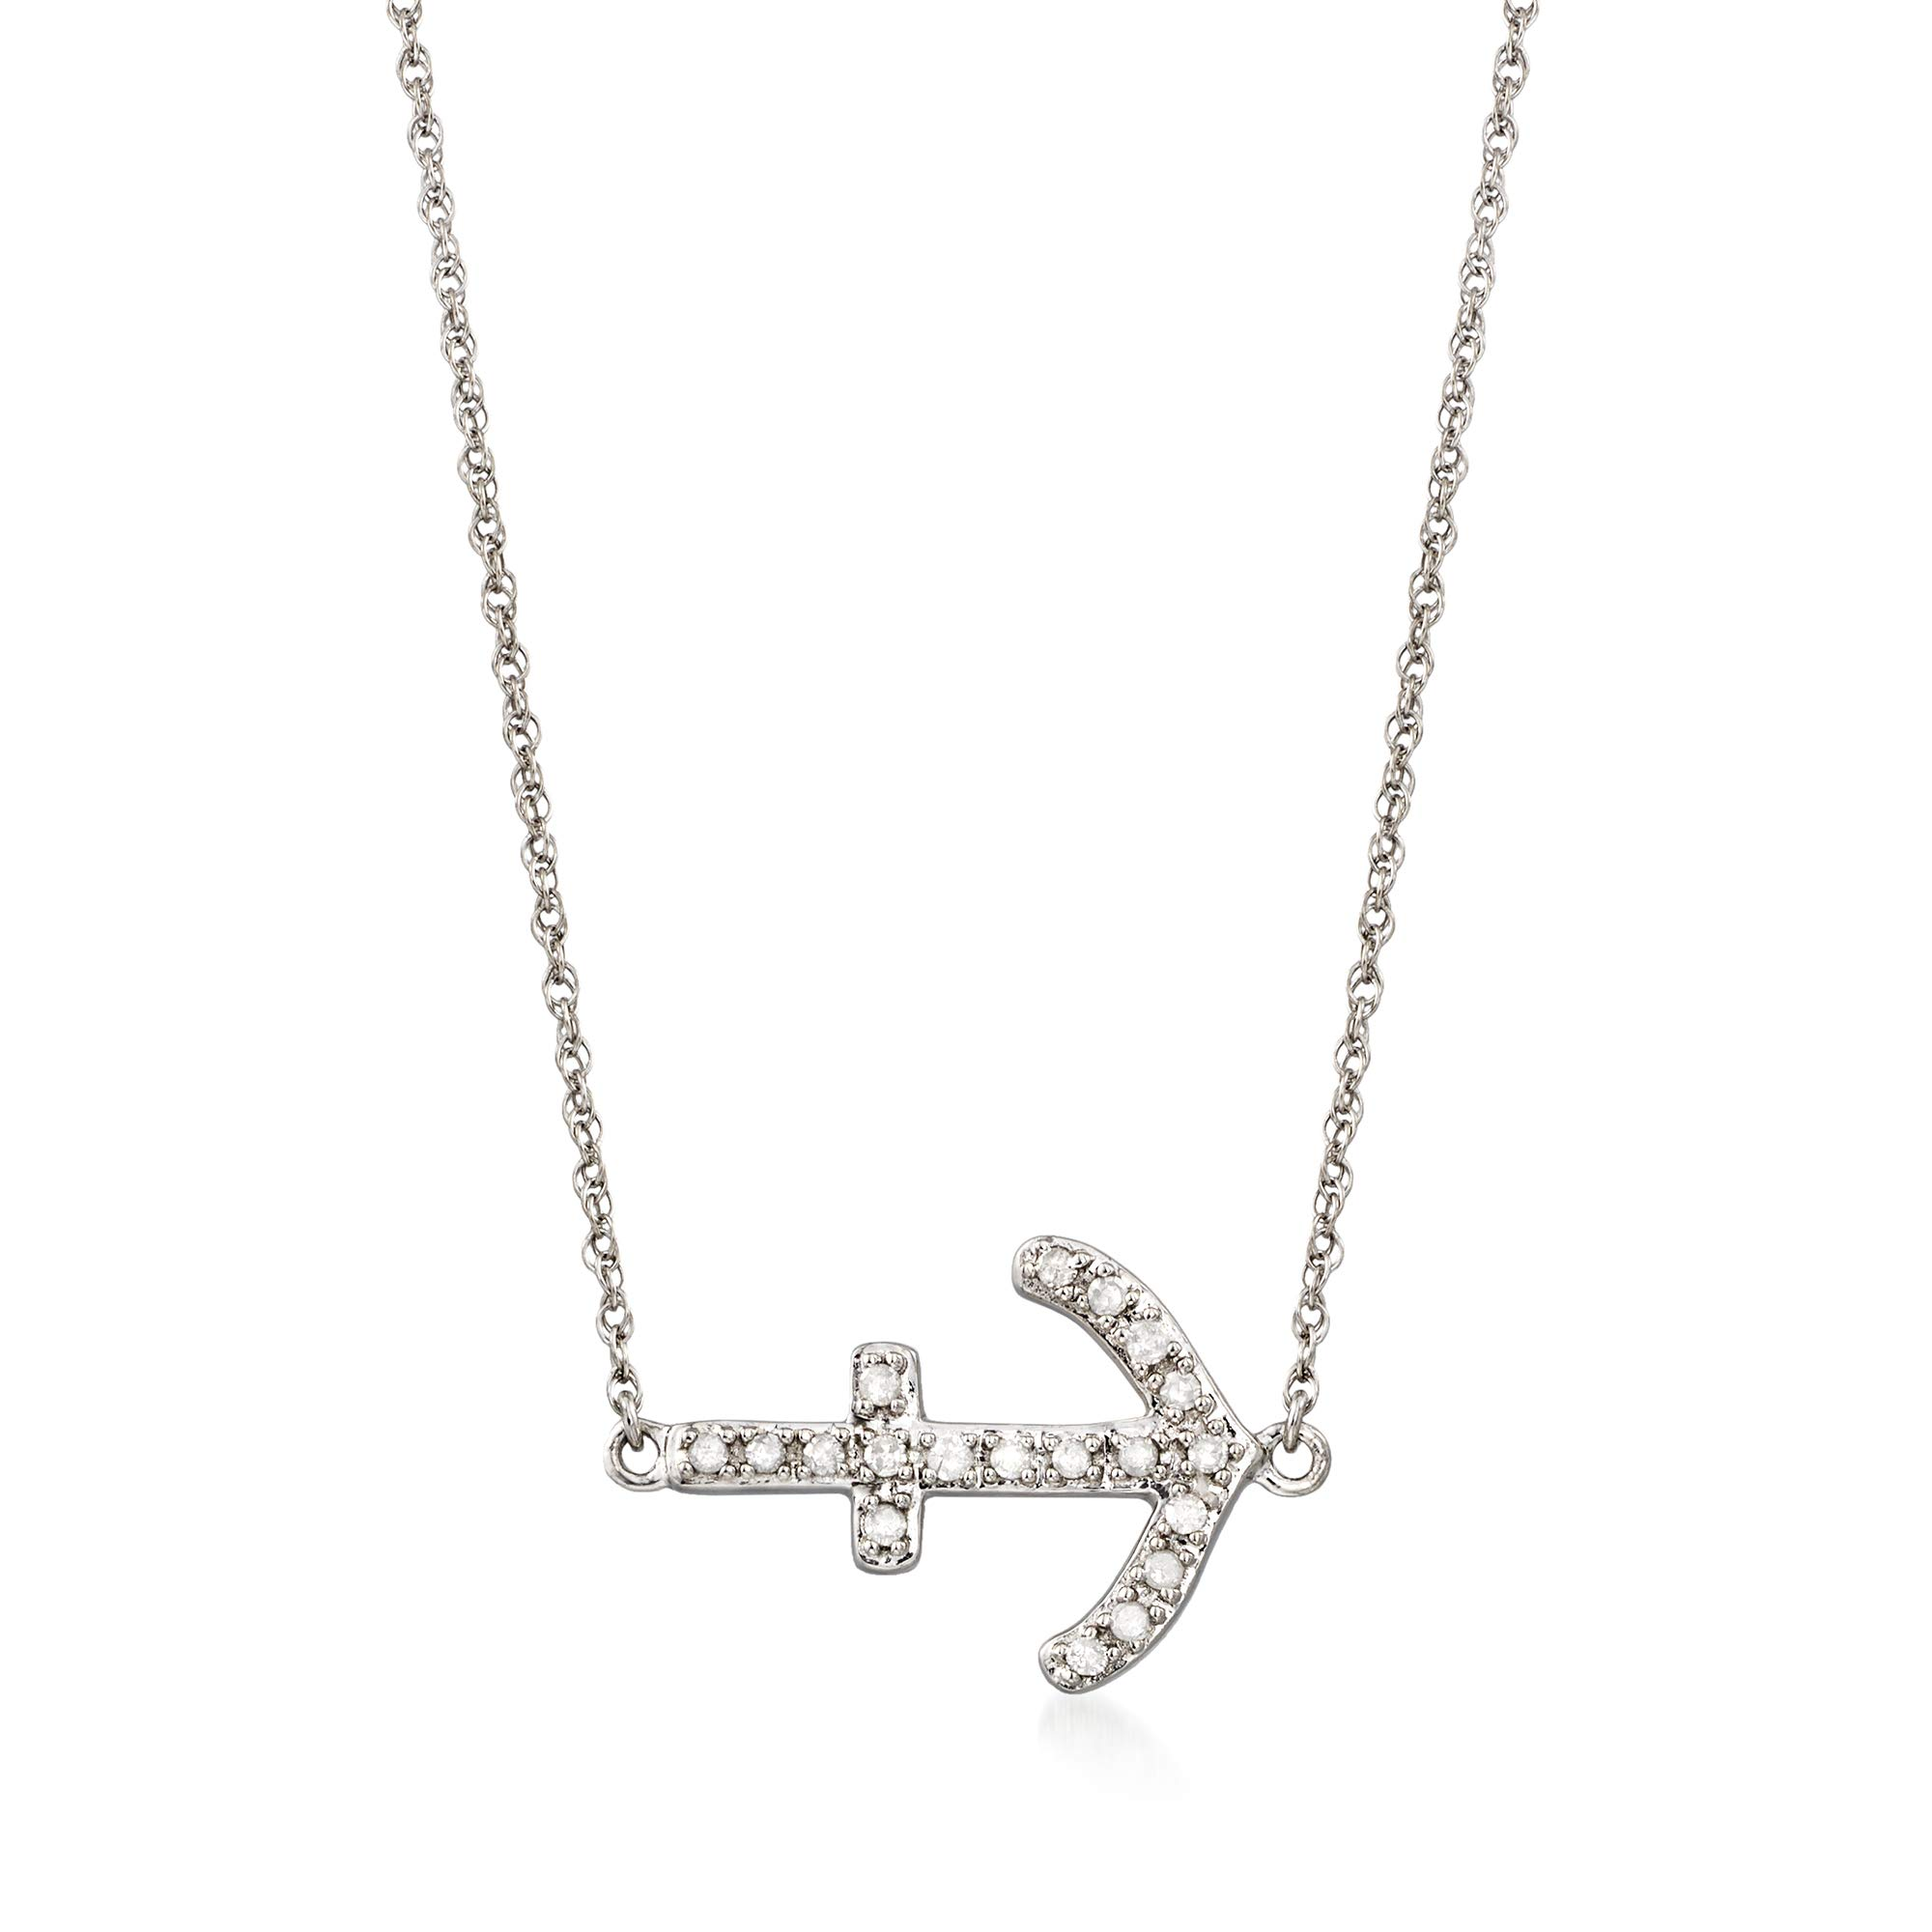 Ross-Simons 0.15 ct. t.w. Diamond Sideways Anchor Necklace in Sterling Silver by Ross-Simons